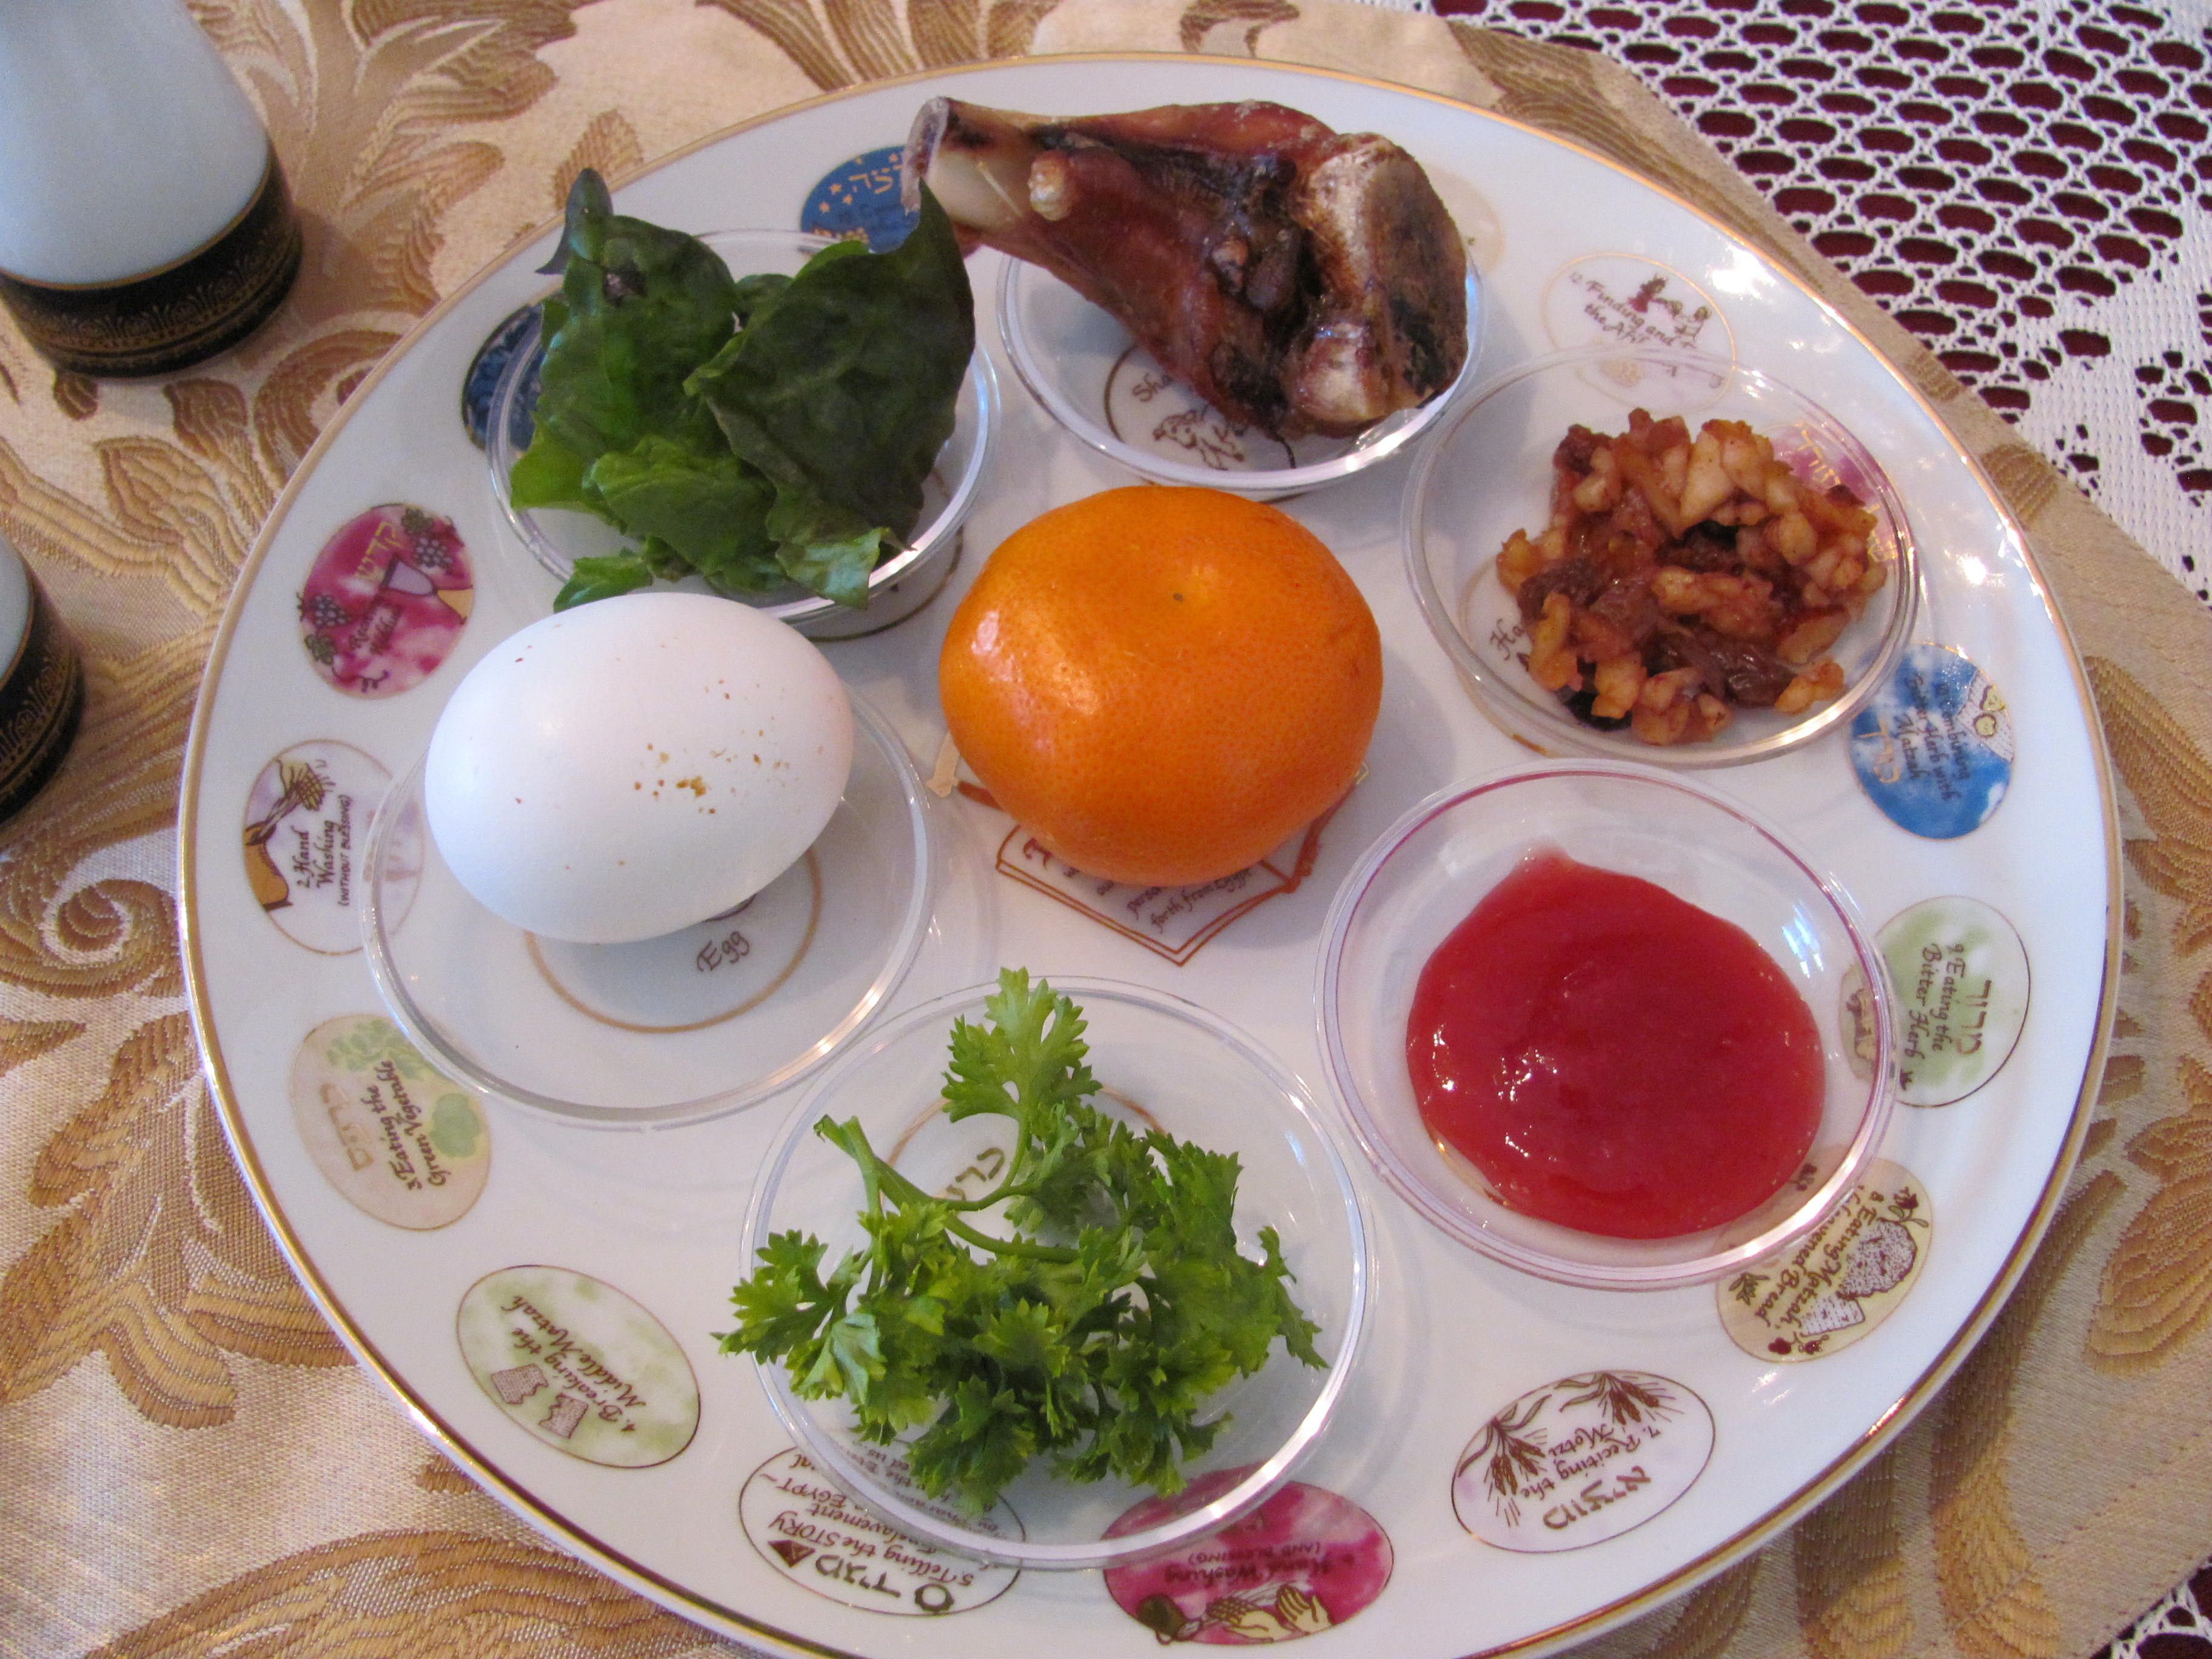 The Seder Ritual The Order of the Seder   Martha stewart Passover recipes and Seder meal & The Seder Ritual: The Order of the Seder   Martha stewart Passover ...